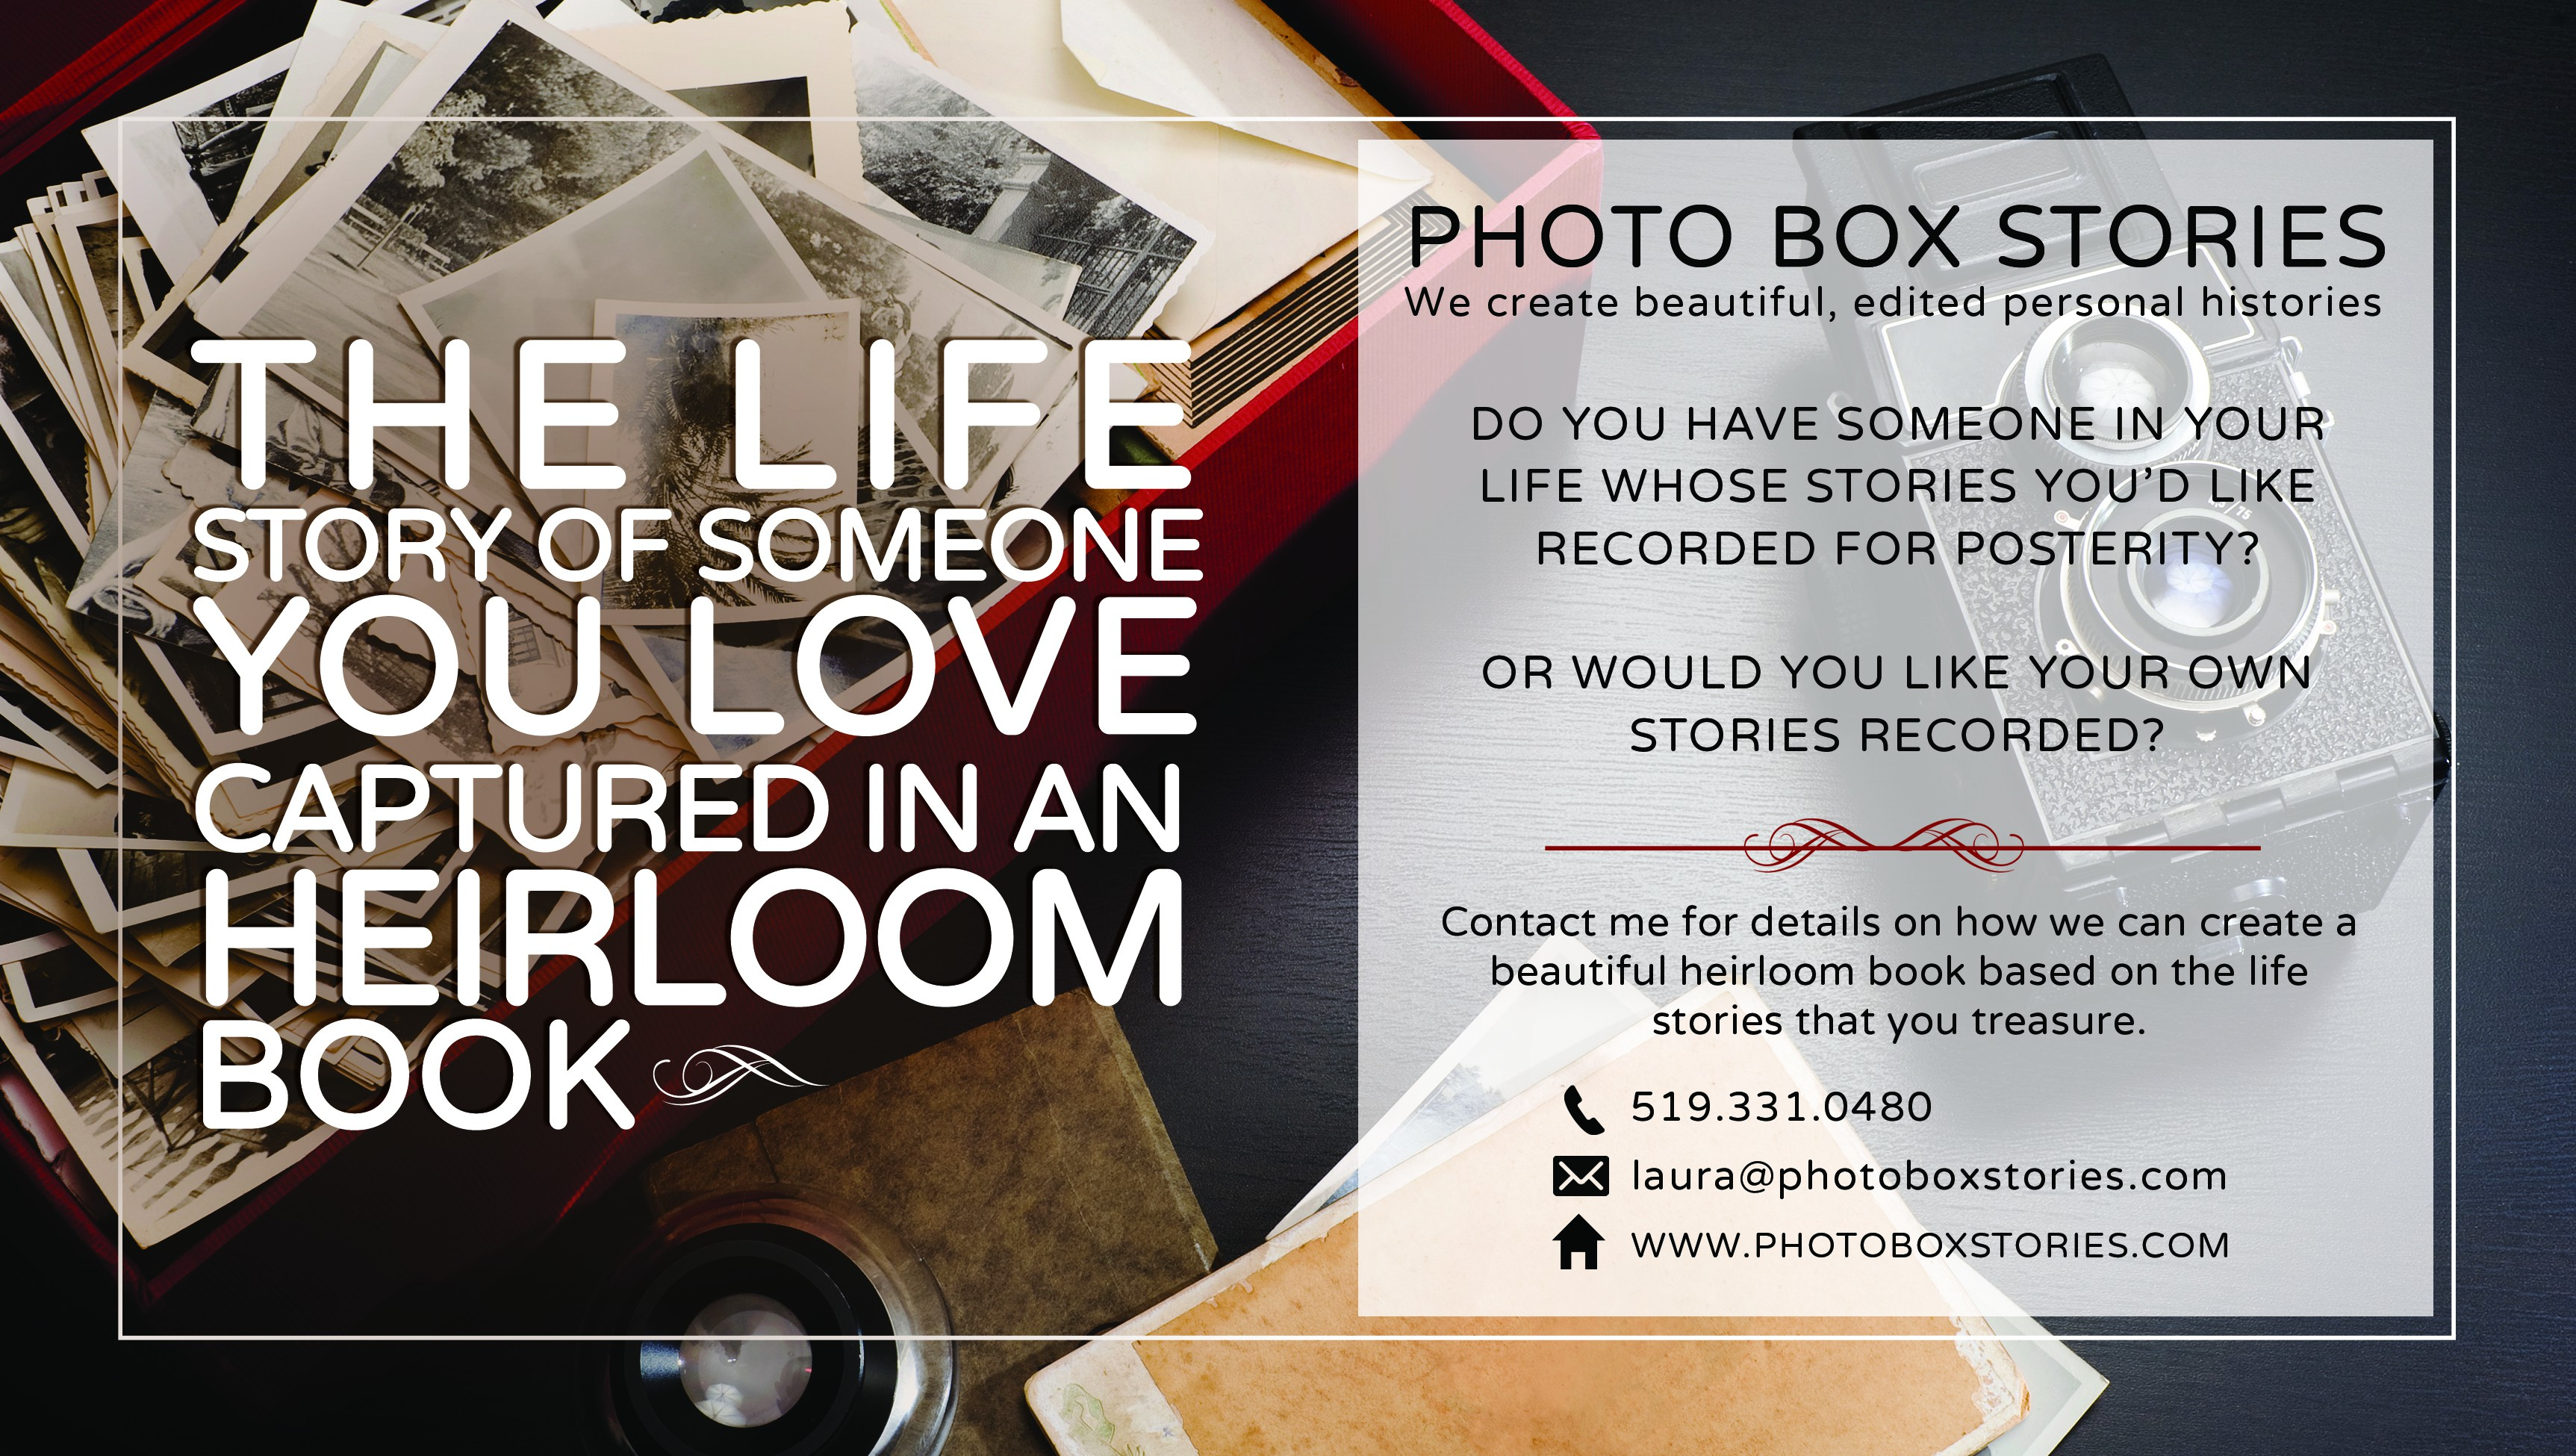 Postcard for Photo Box Stories